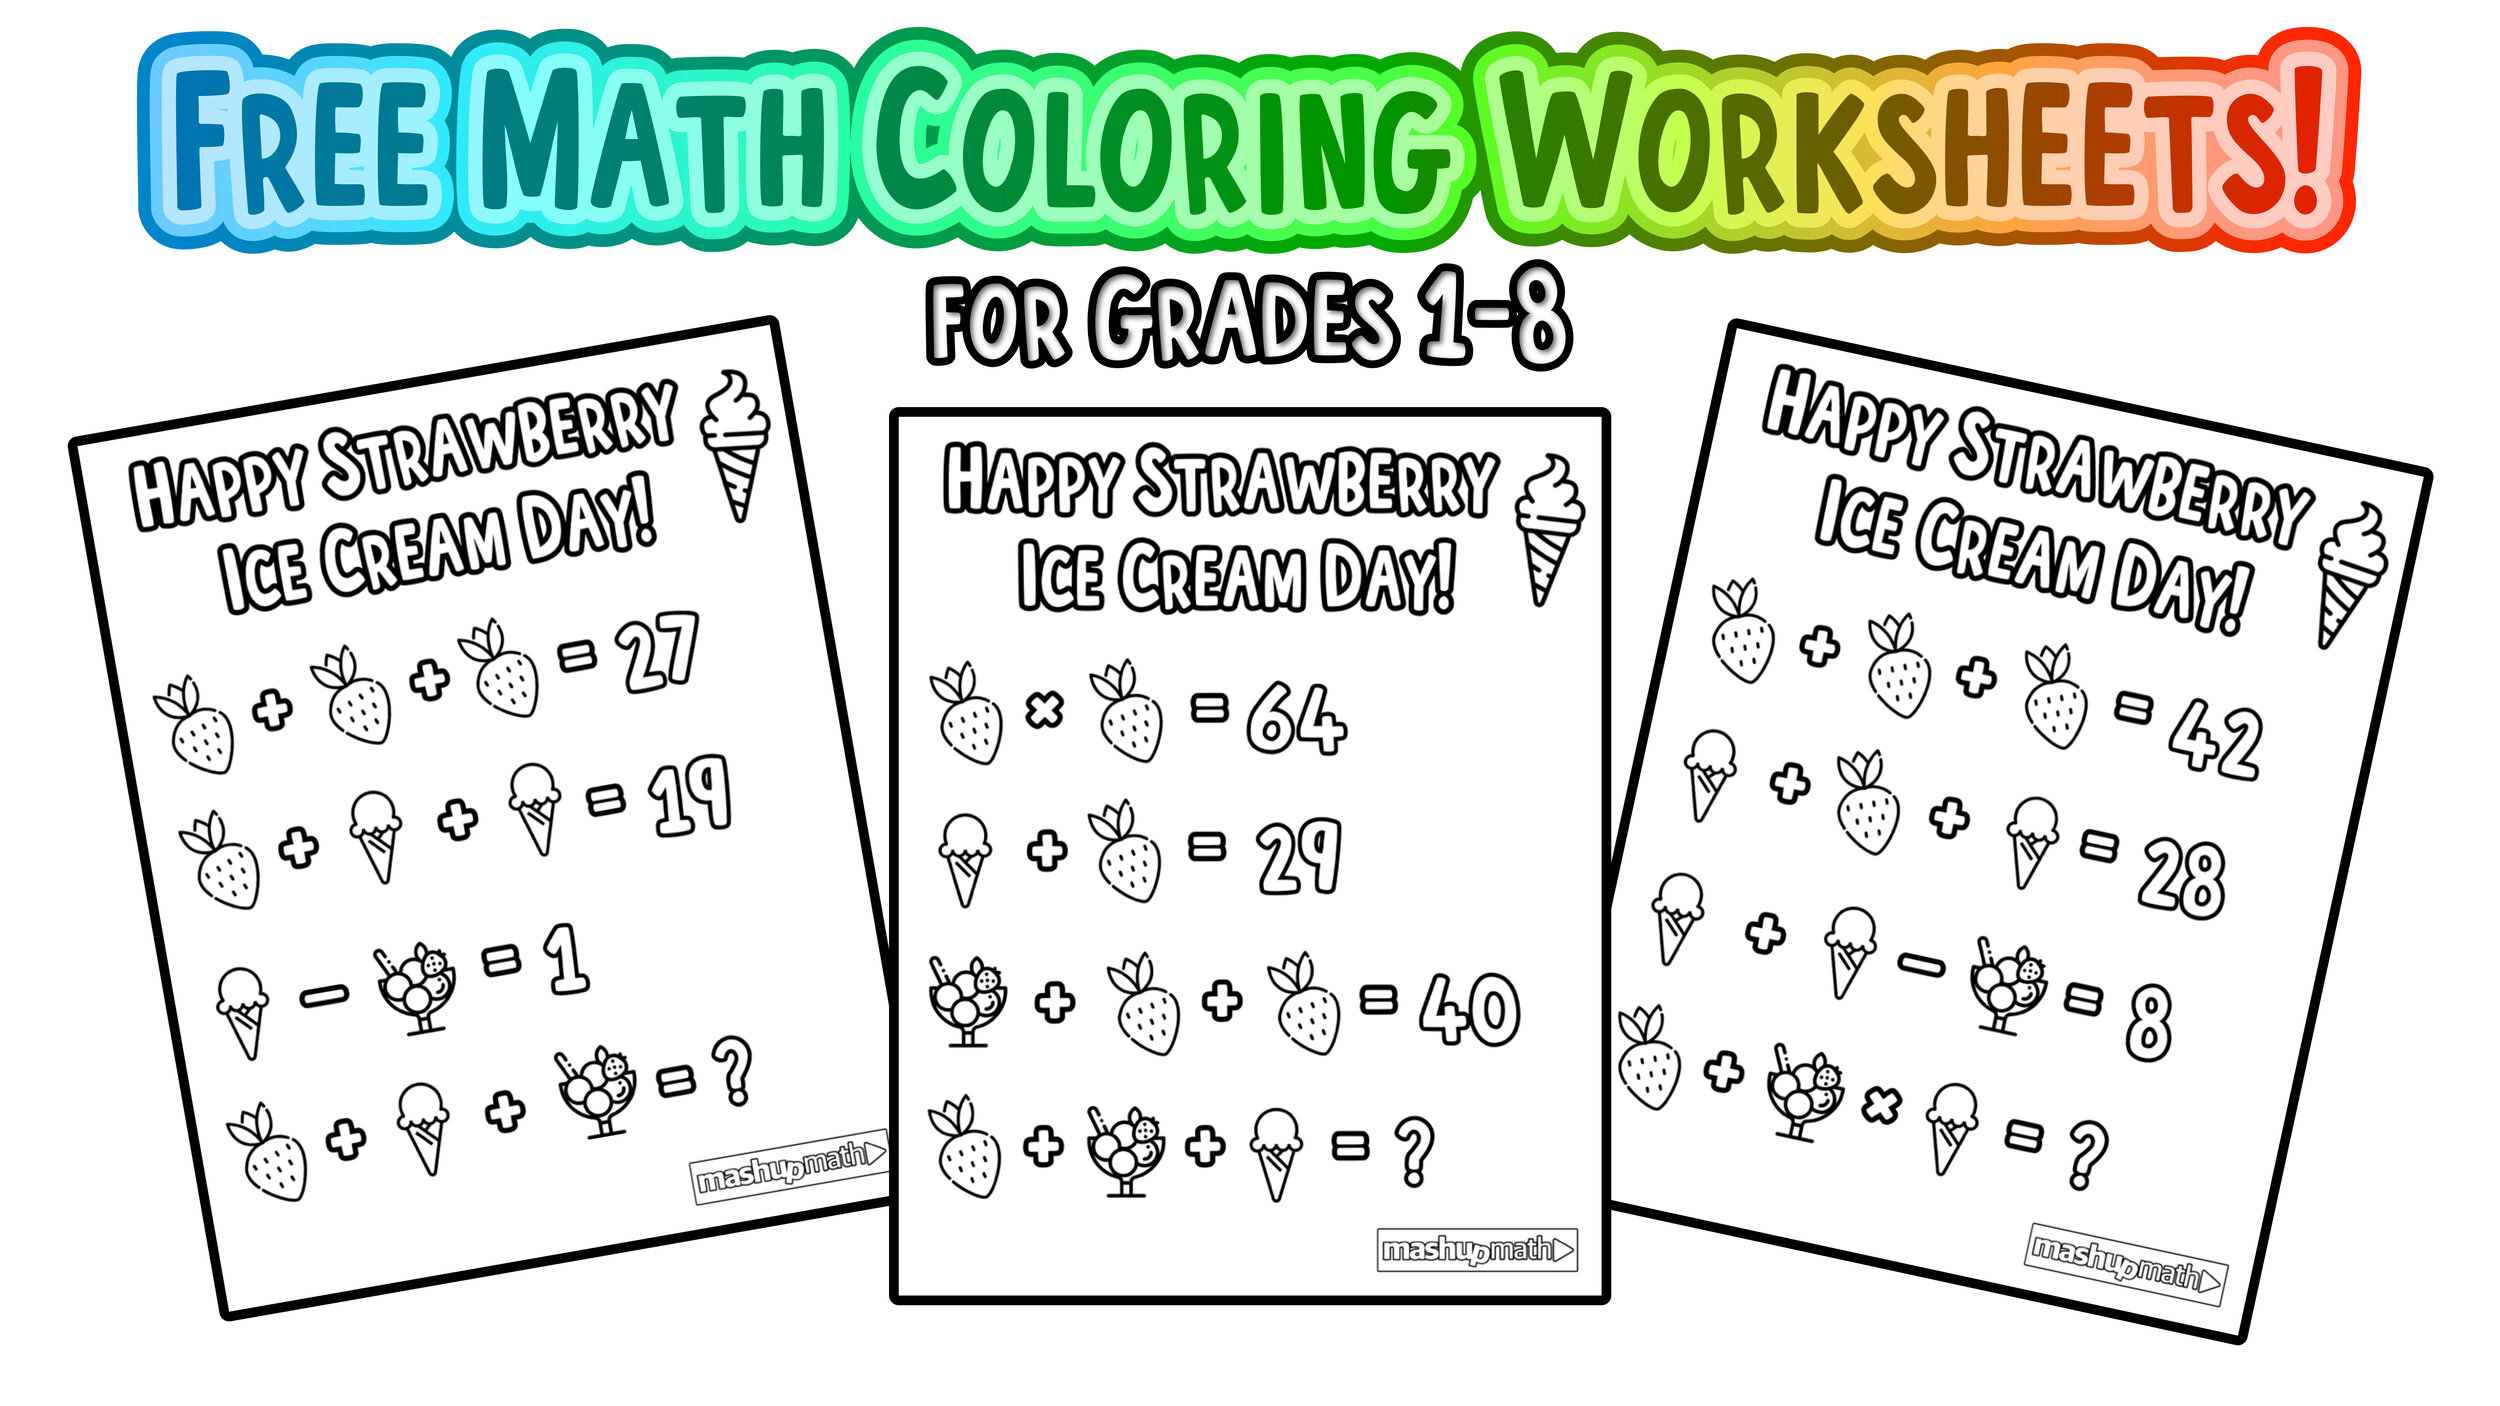 - Free Math Coloring Pages For Grades 1-8 — Mashup Math